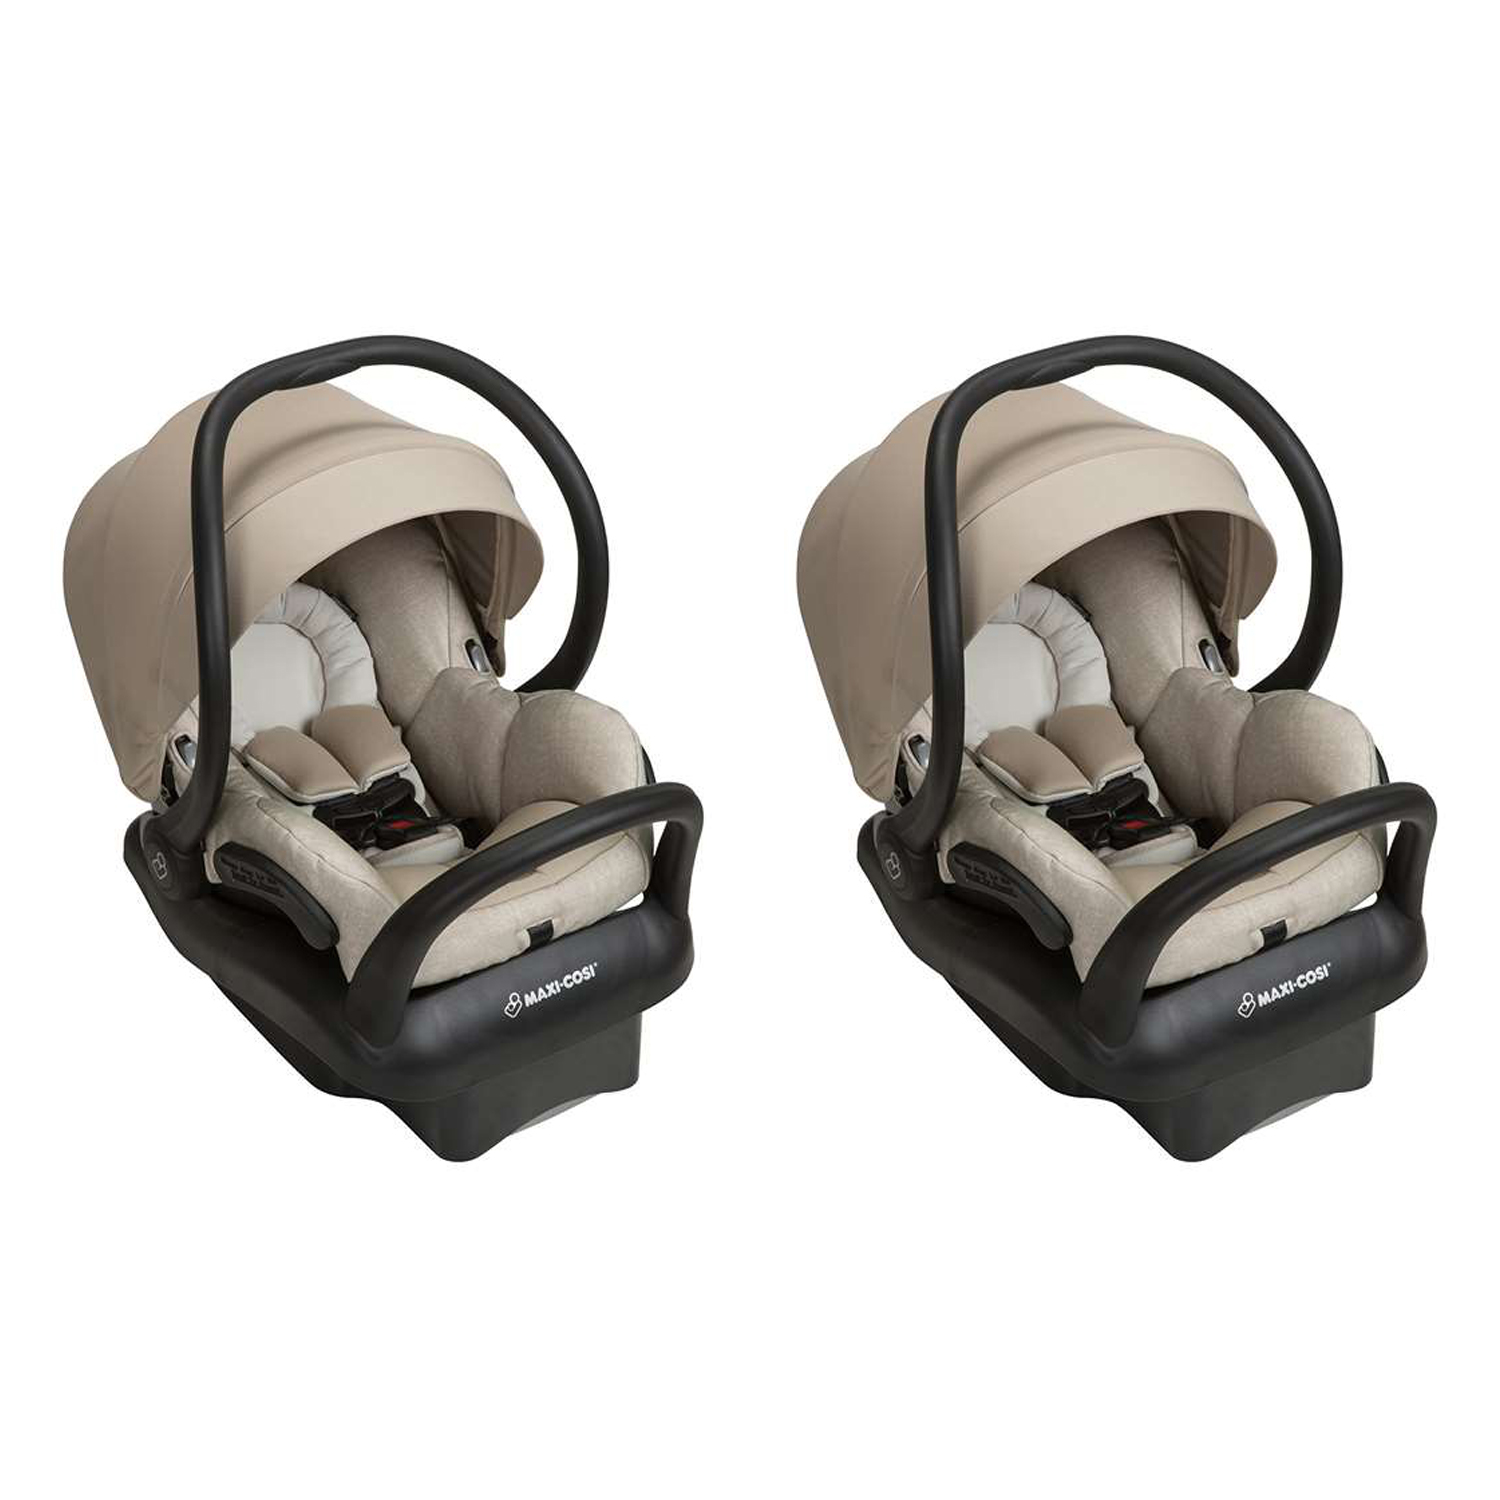 Details About Maxi Cosi Mico Max 30 Rear Facing Baby Infant Car Seat With Base 2 Pack